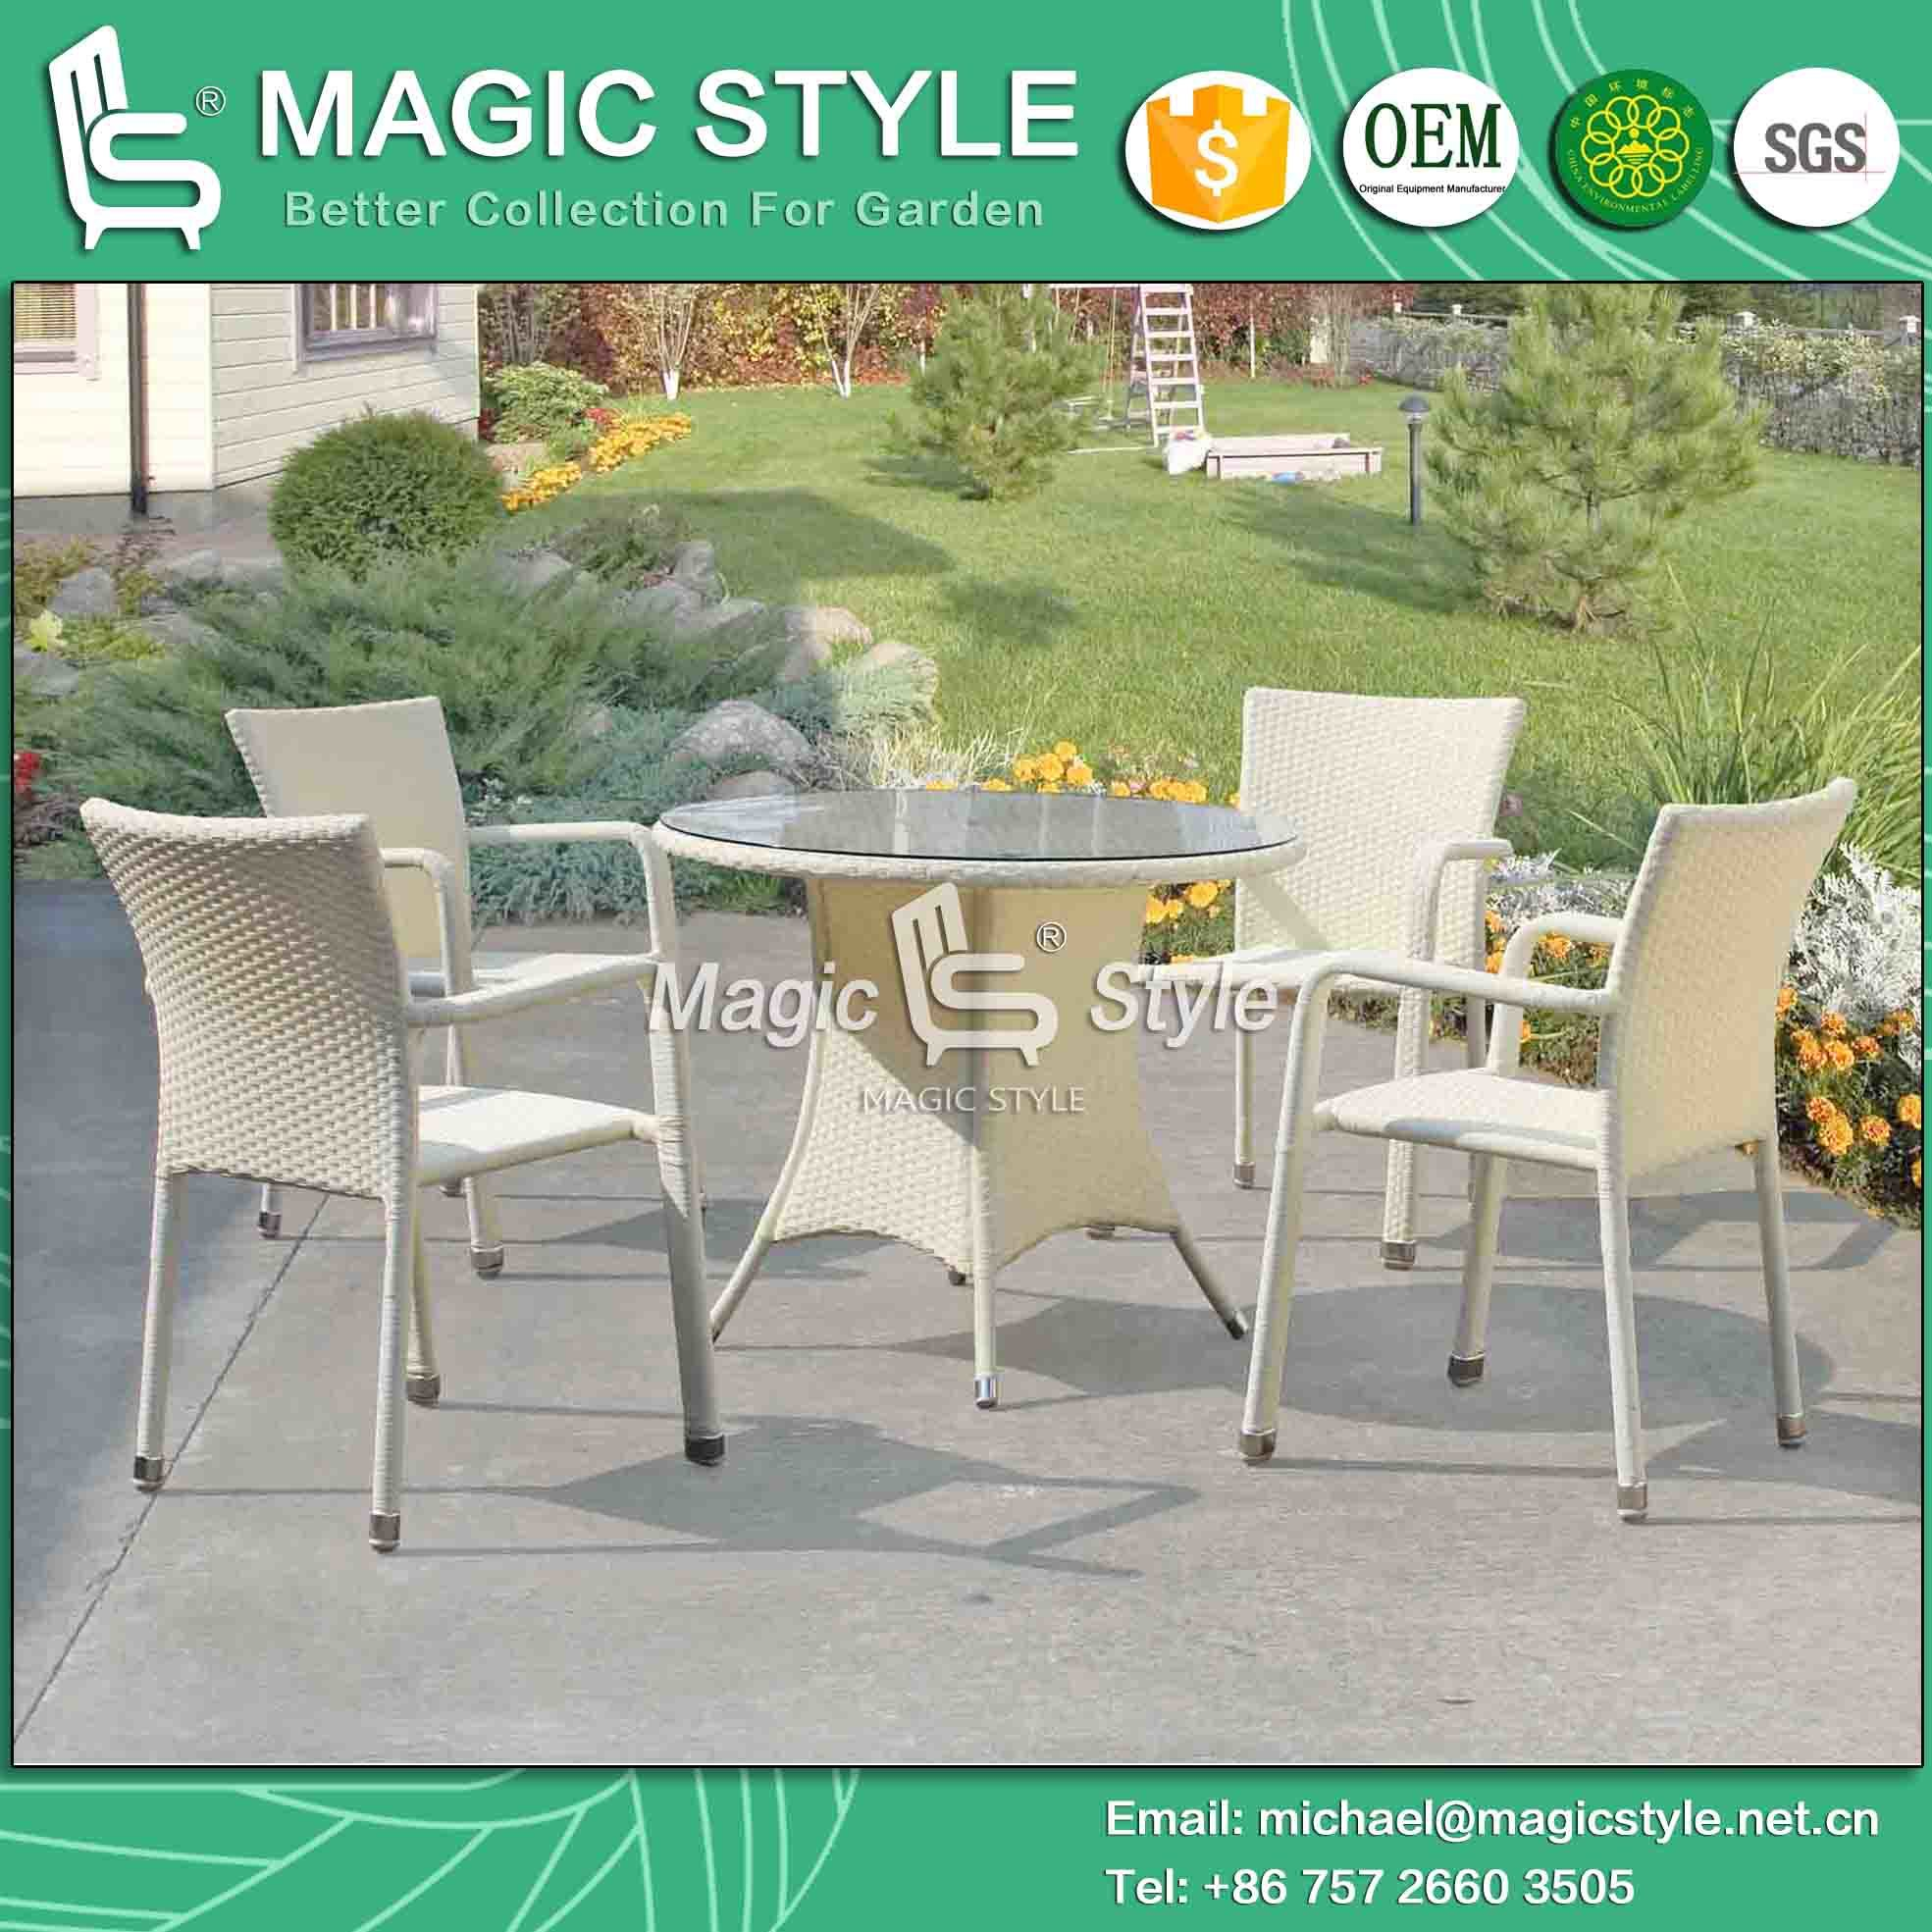 Patio Wicker Chair Rattan Chair Dining Chair Stackable Chair Outdoor Chair Coffee Chair (MAGIC STYLE)